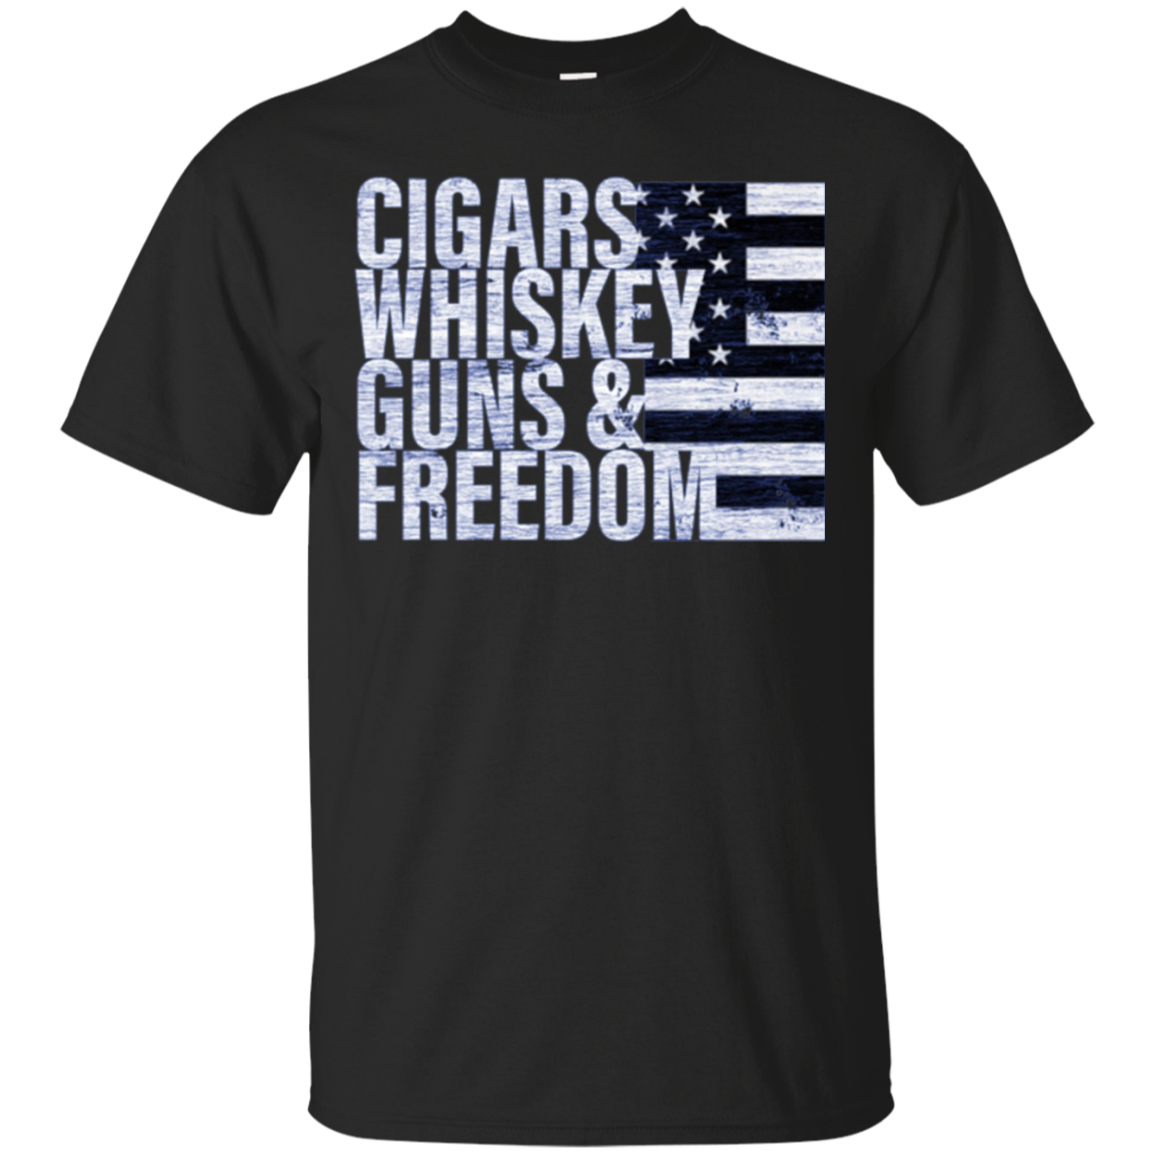 Cigars Whiskey Guns & Freedom T-shirt Flag Long Sleeve Tee